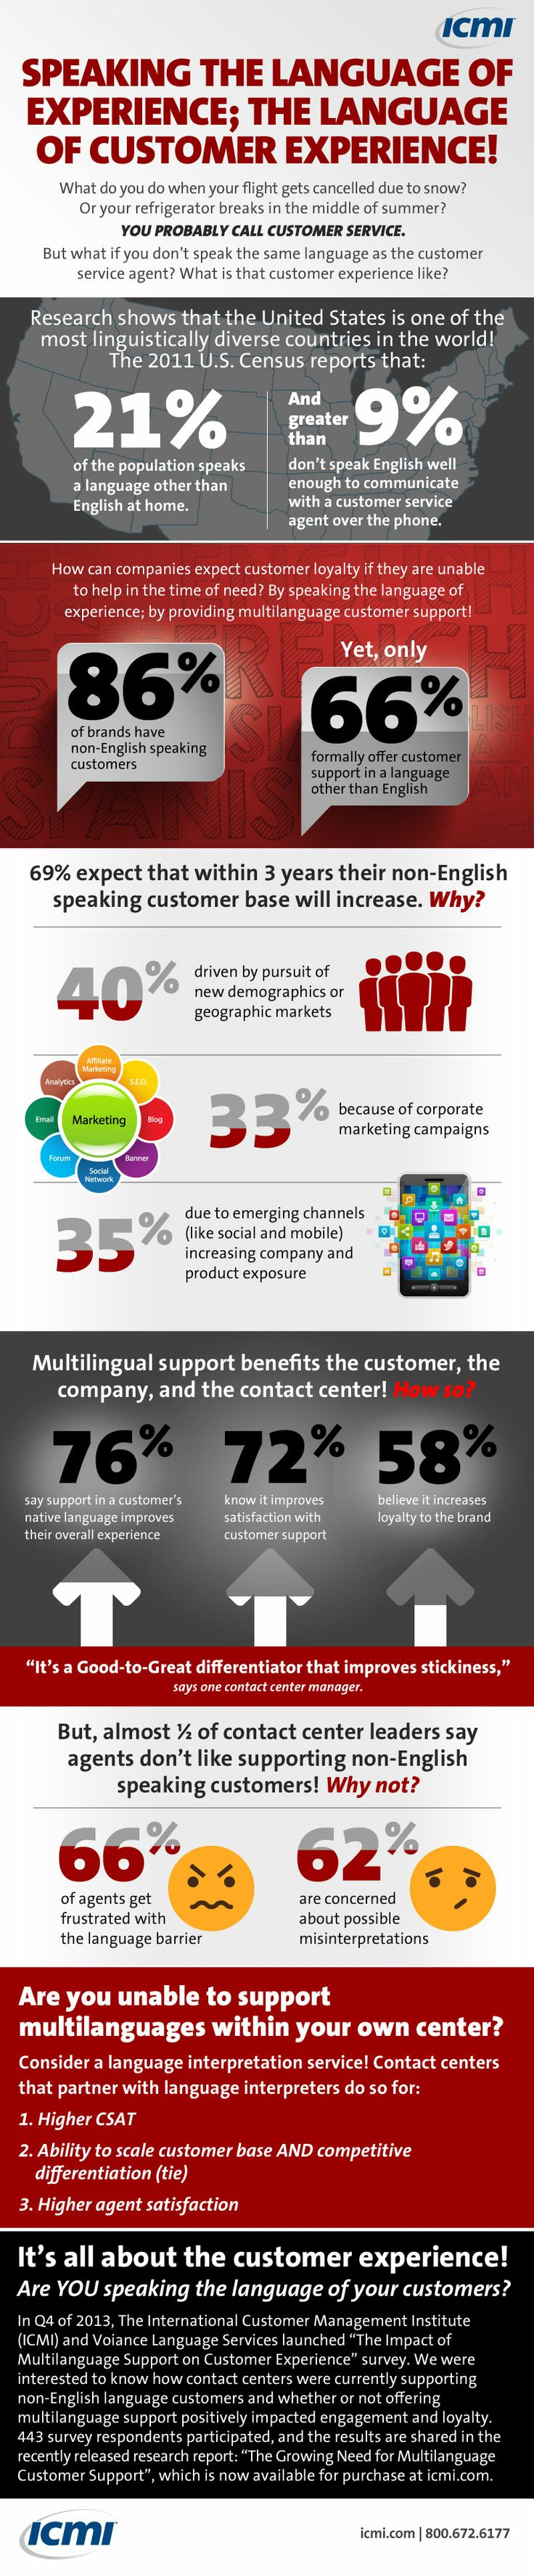 Multilanguage Support in the Contact Center